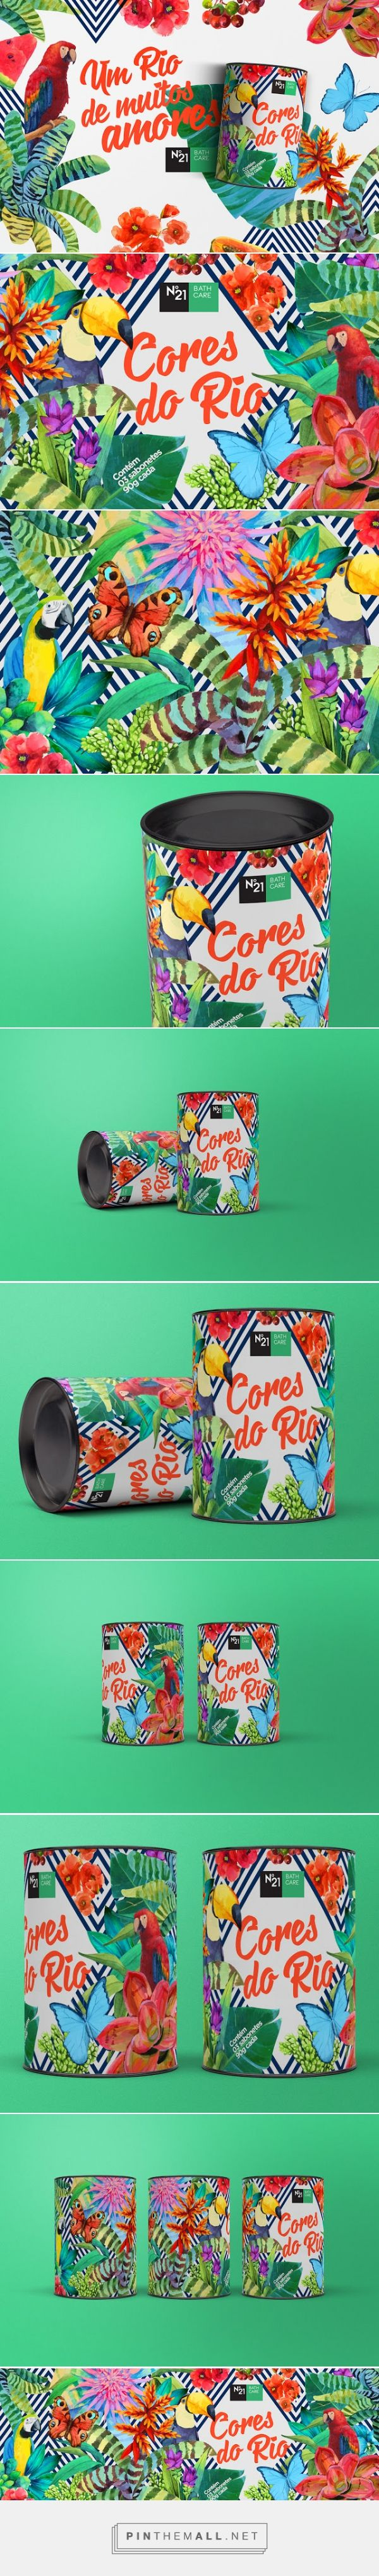 Colors of Rio #Soap #packaging designed by Up Design - http://www.packagingoftheworld.com/2015/05/colors-of-rio-soap.html